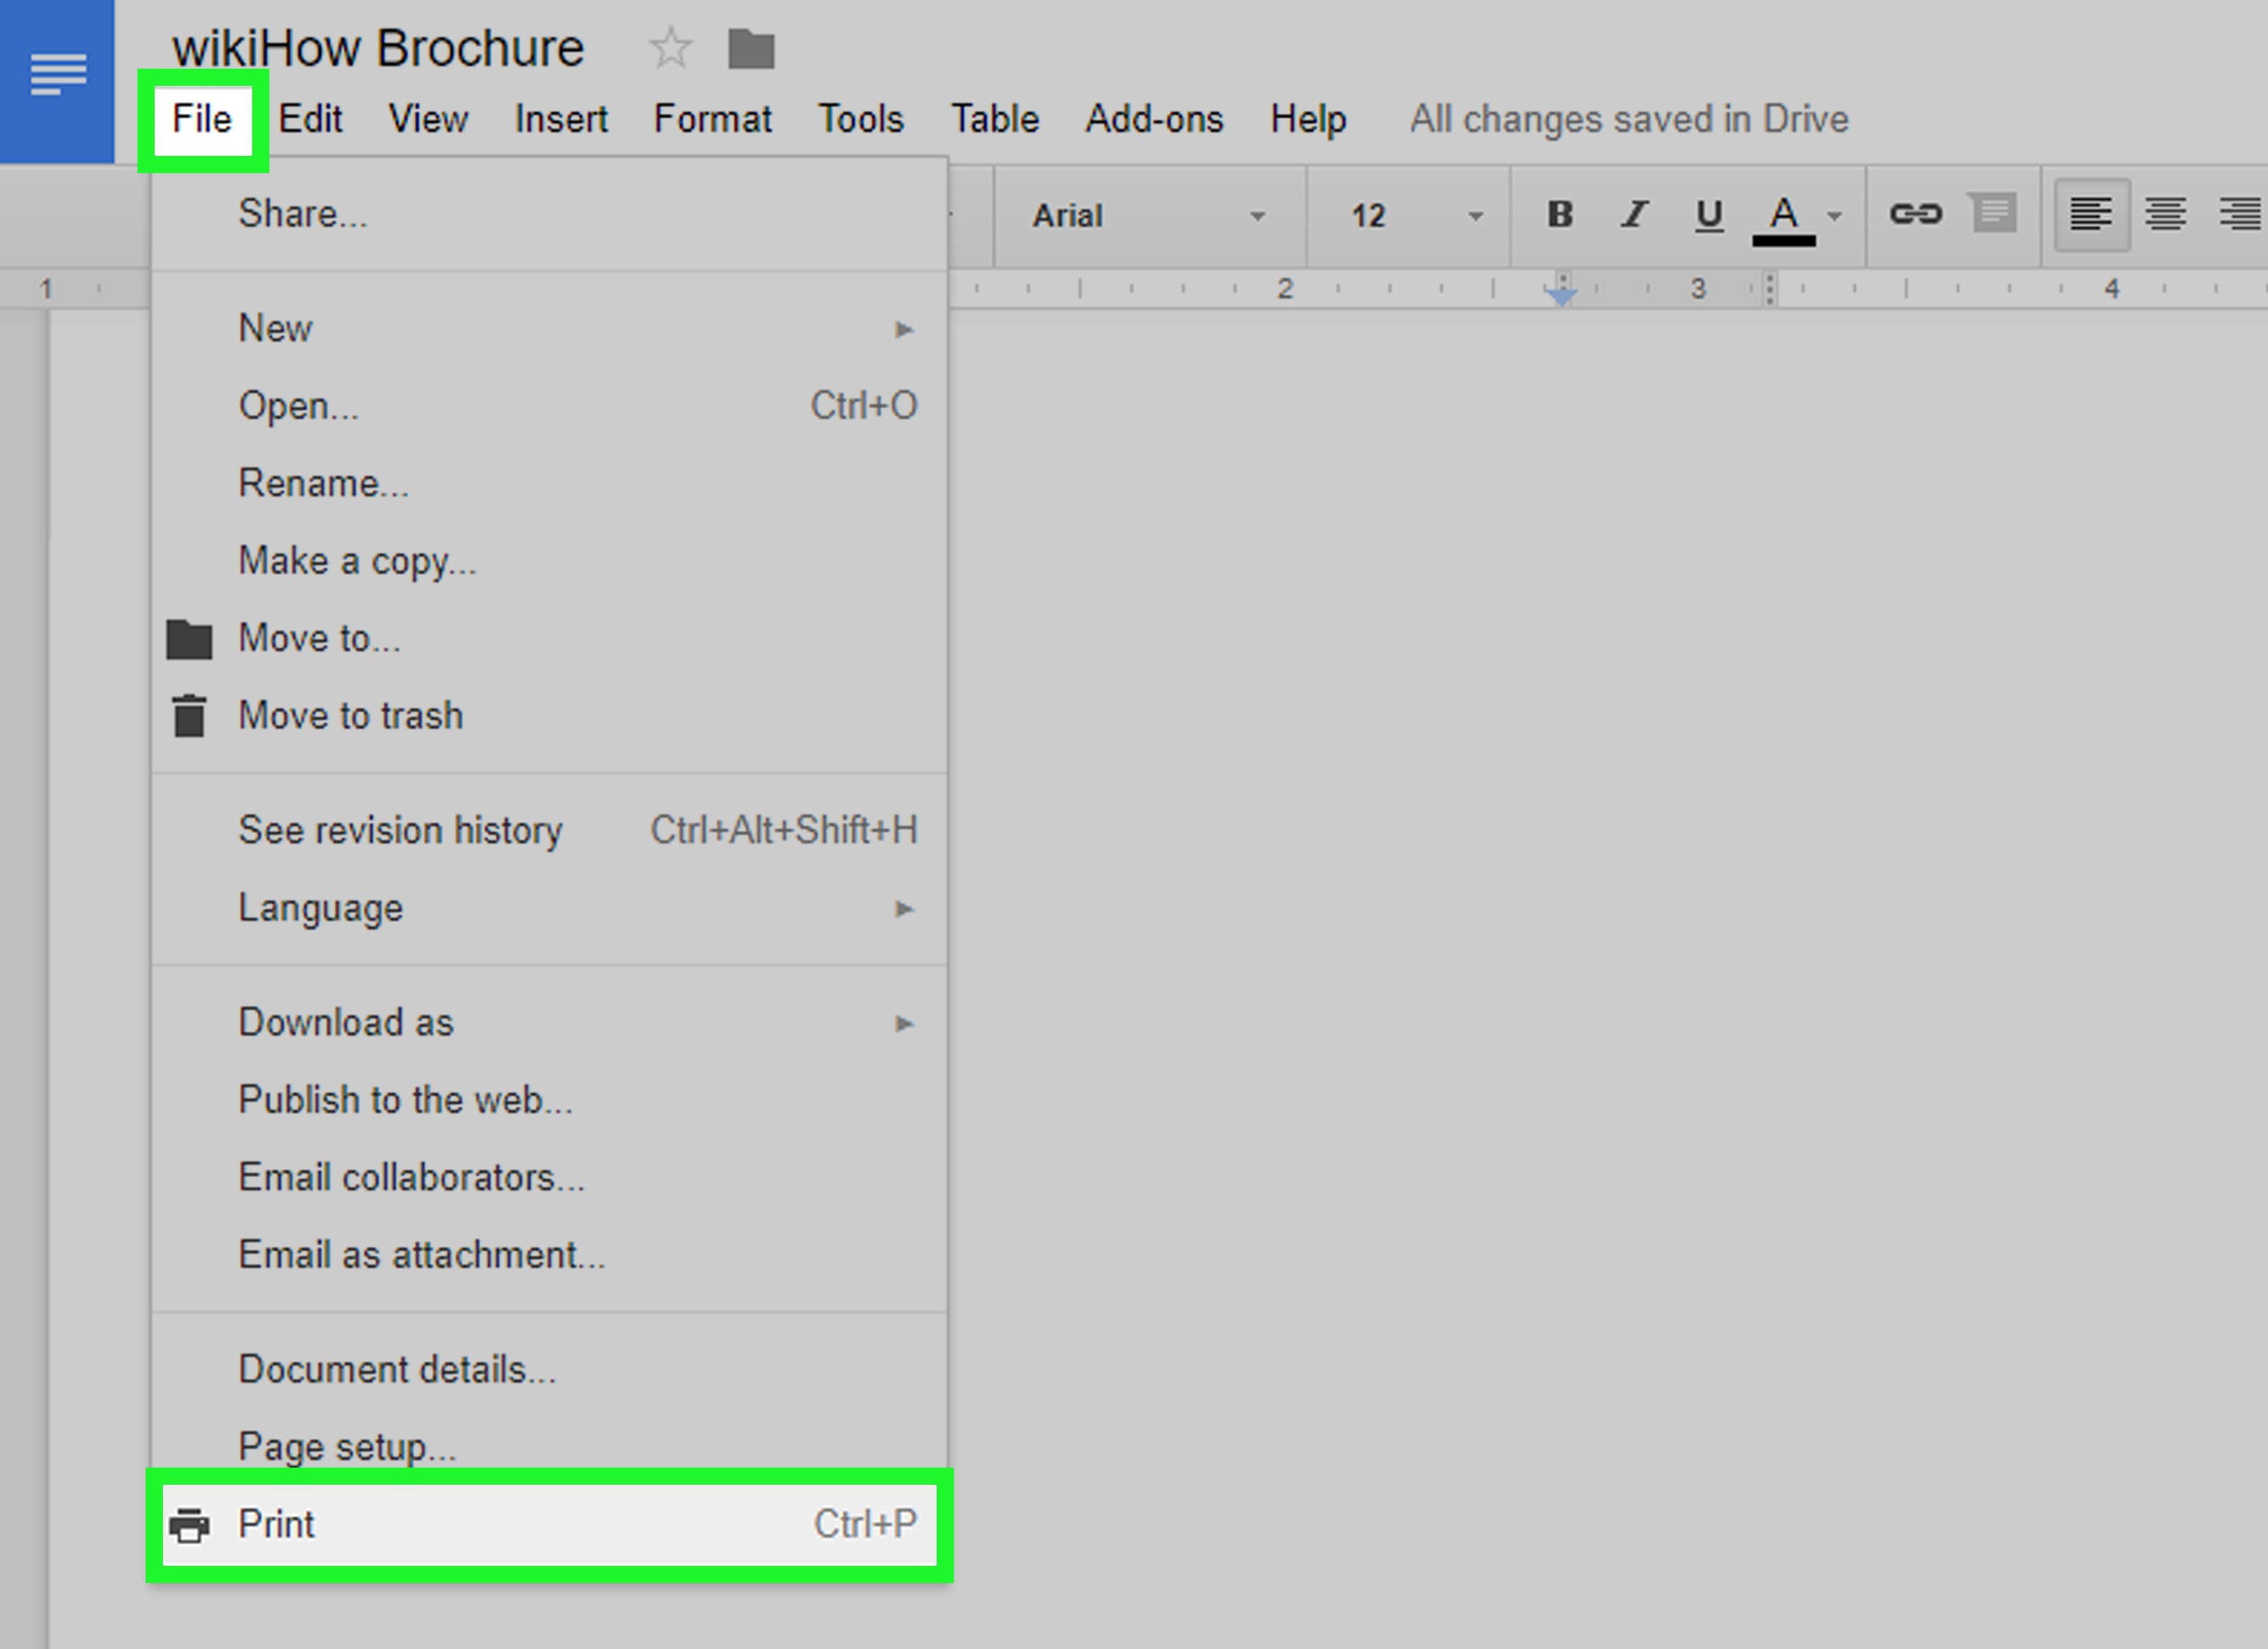 Google Drive Brochure Template How to Make A Brochure Using Google Docs Wikihow